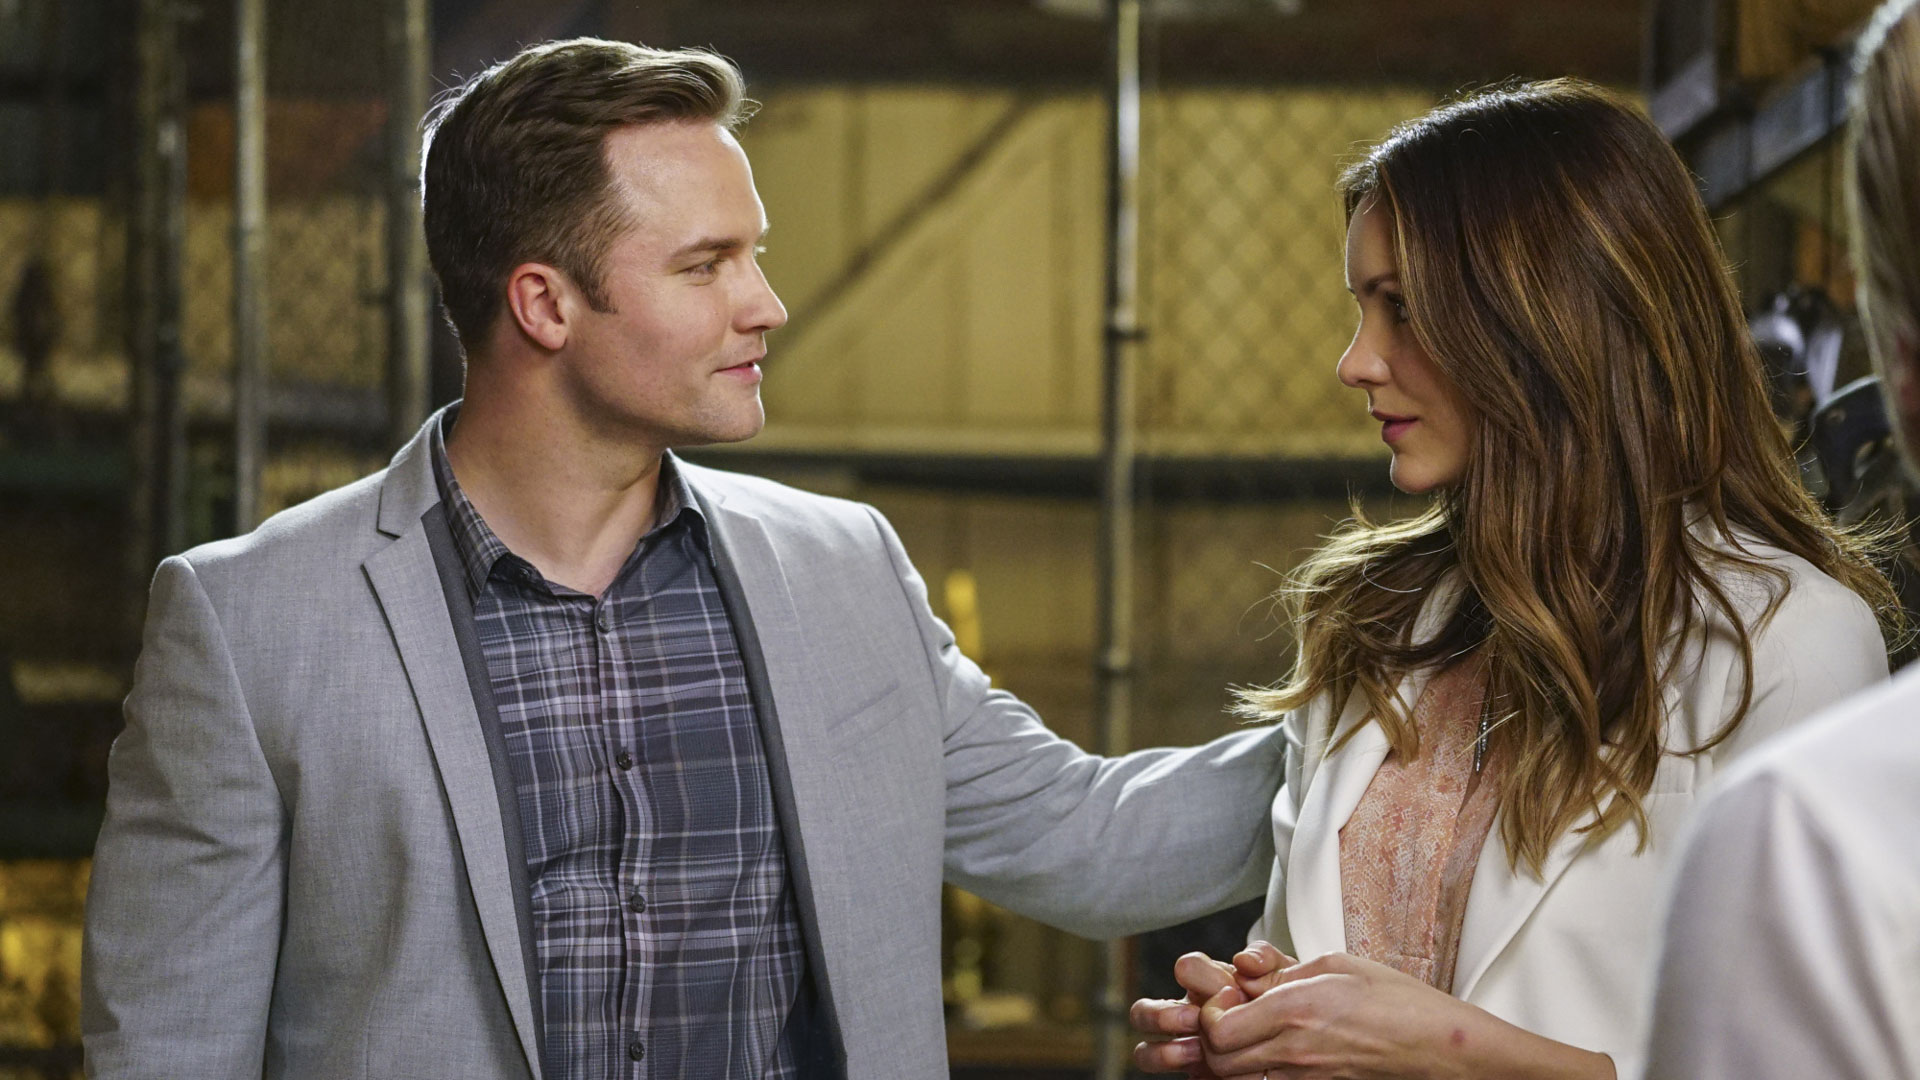 Scott Porter as Tim Armstrong and Katharine McPhee as Paige Dineen